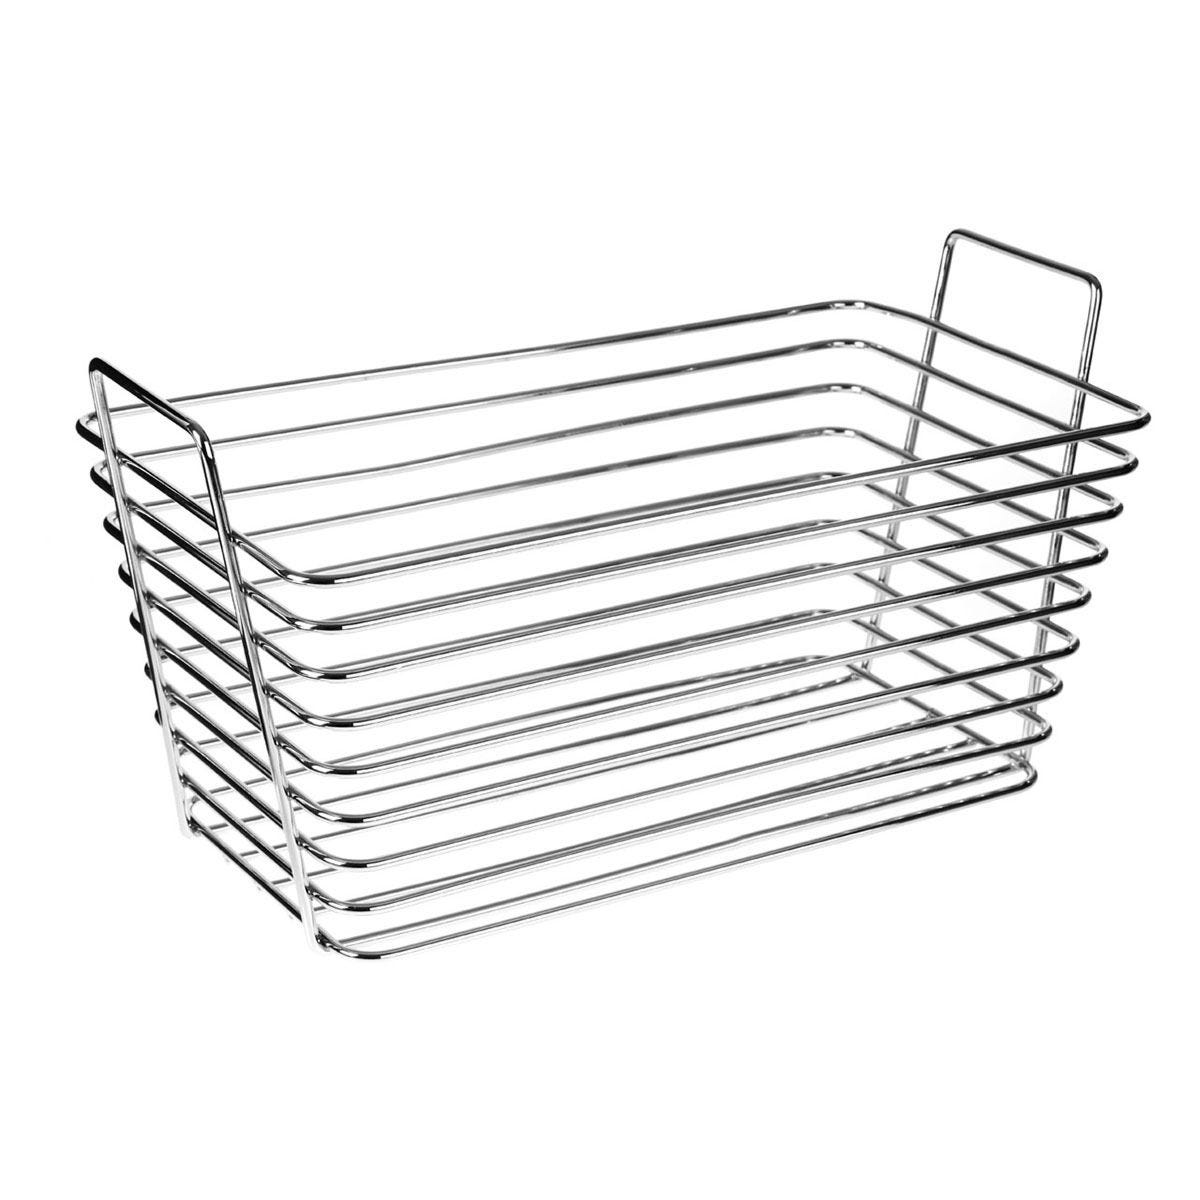 Premier Housewares Caddy with Handles